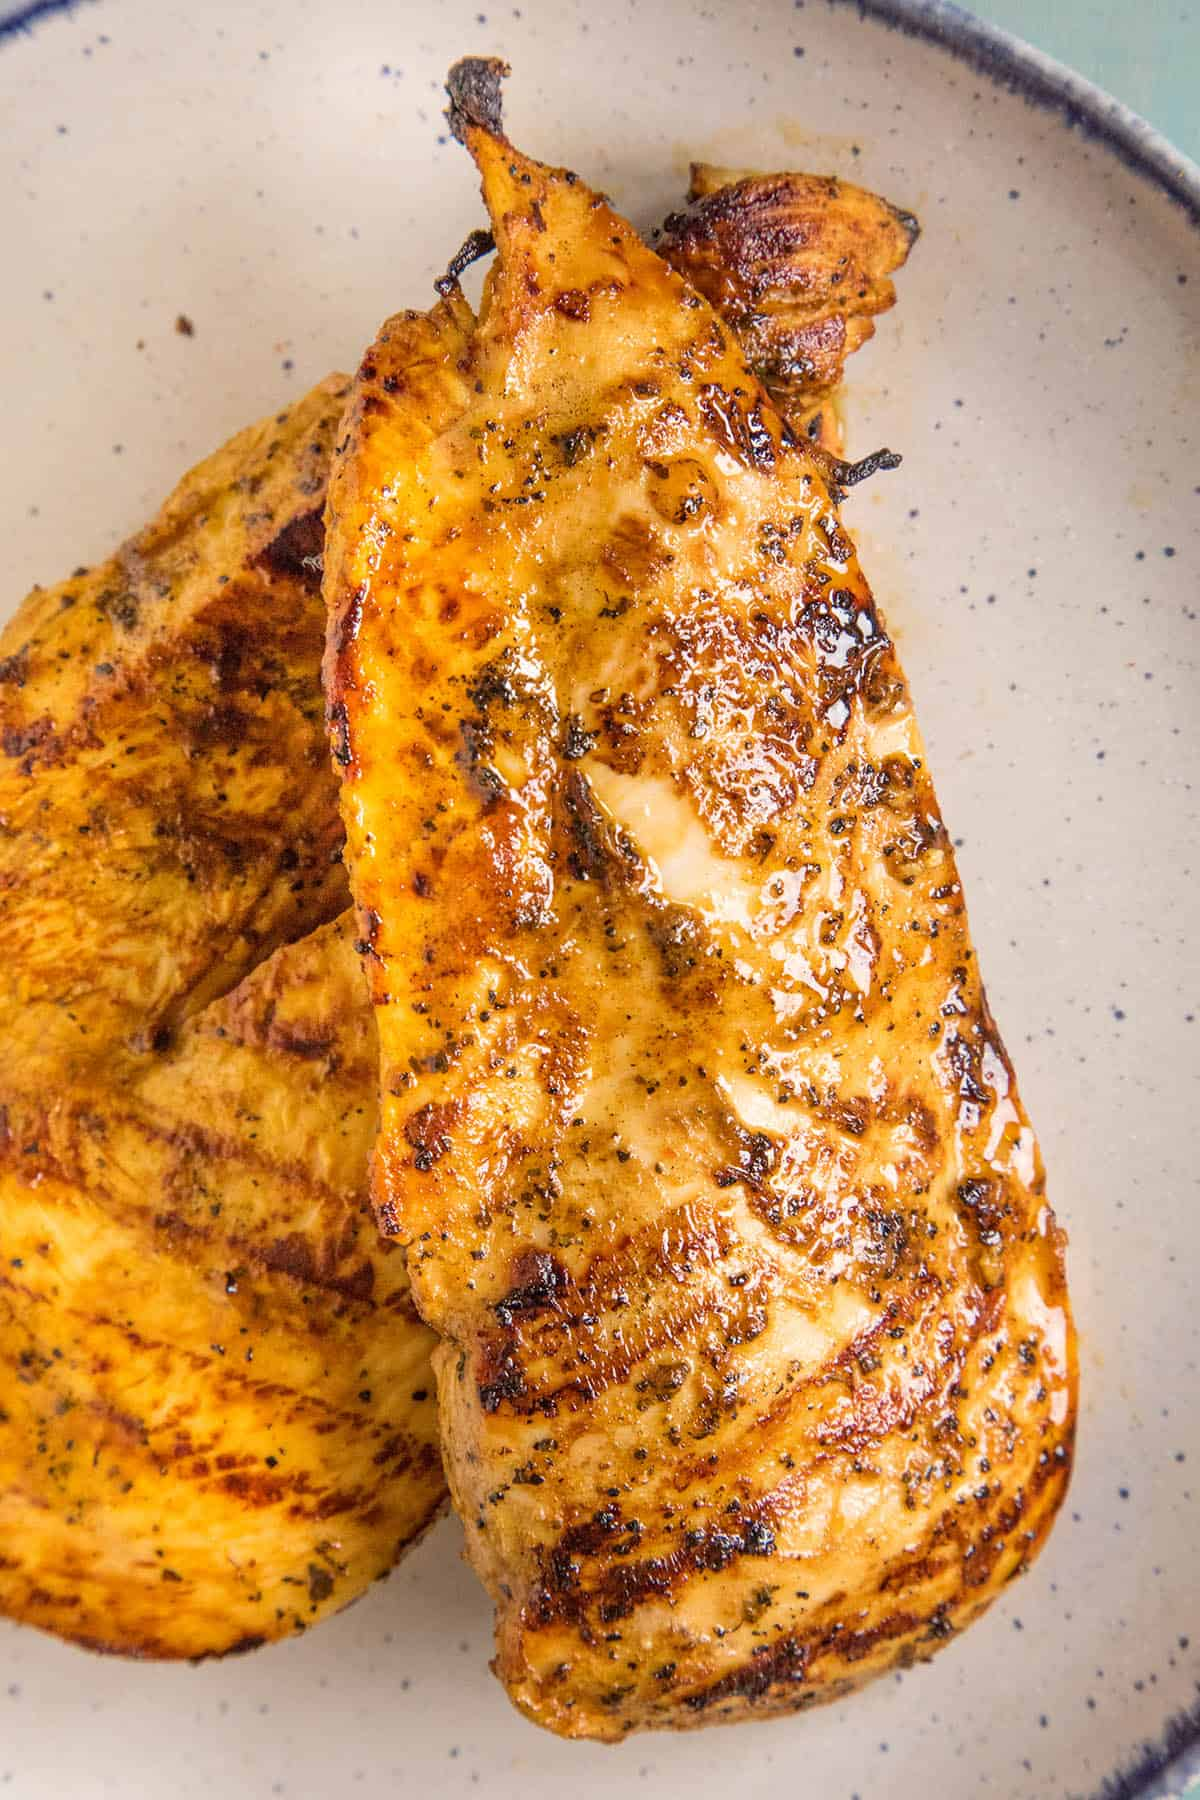 Juicy Chicken That's Been Grilled After Marinating in Our Spicy BBQ Chicken Marinade